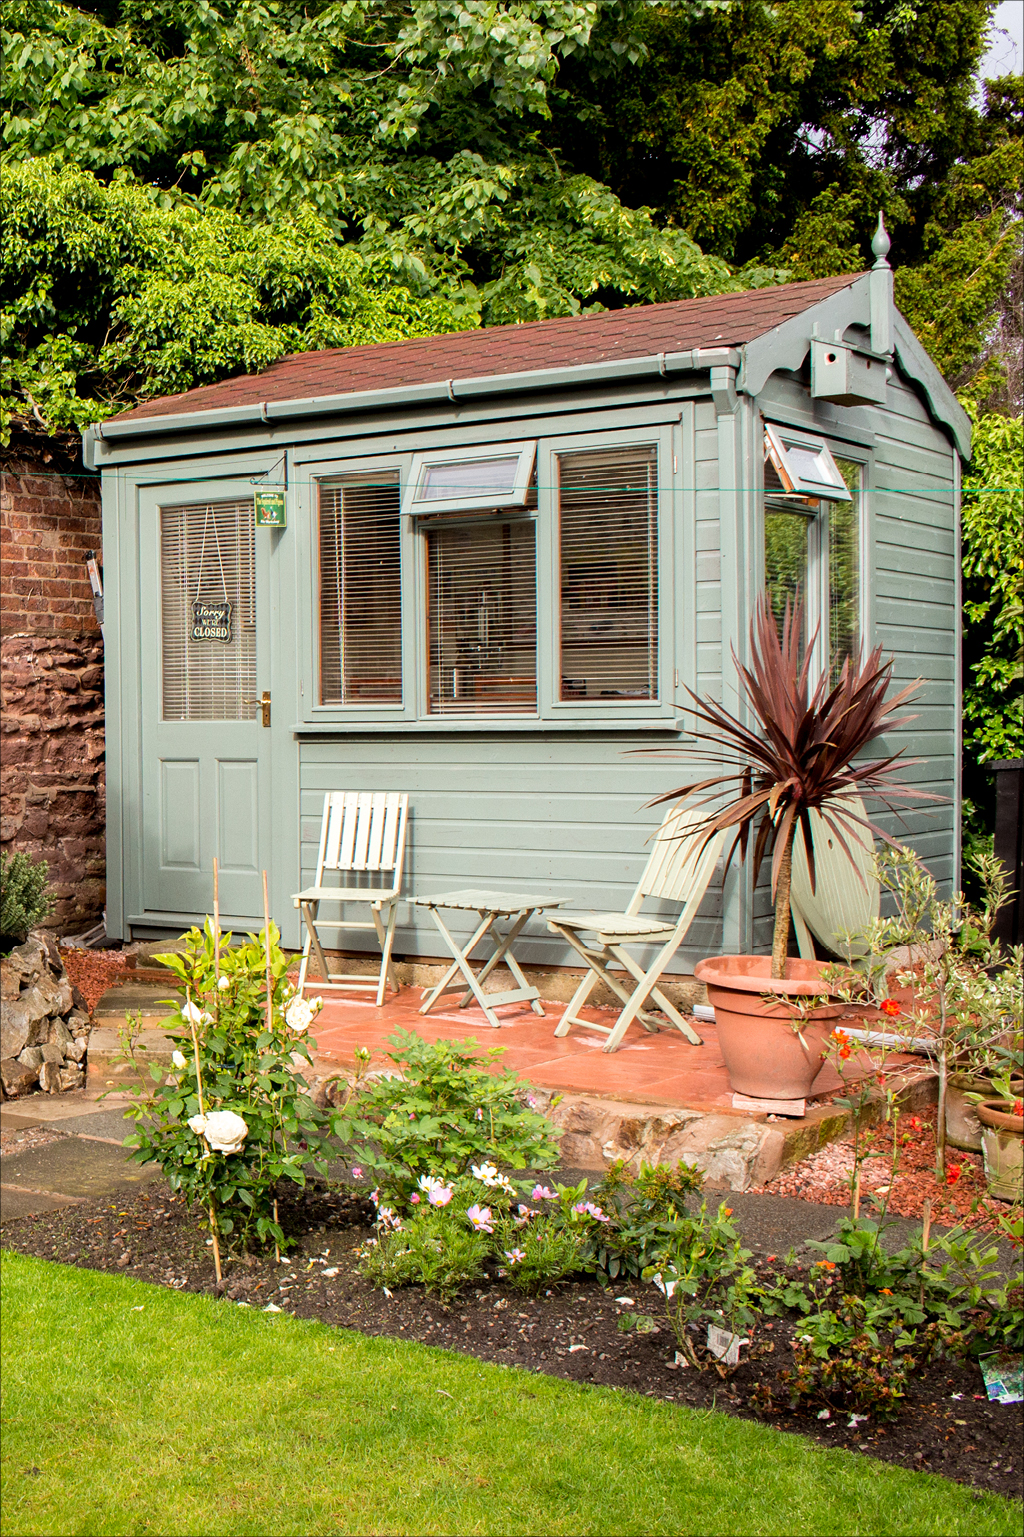 blue shed surrounded by landscaping